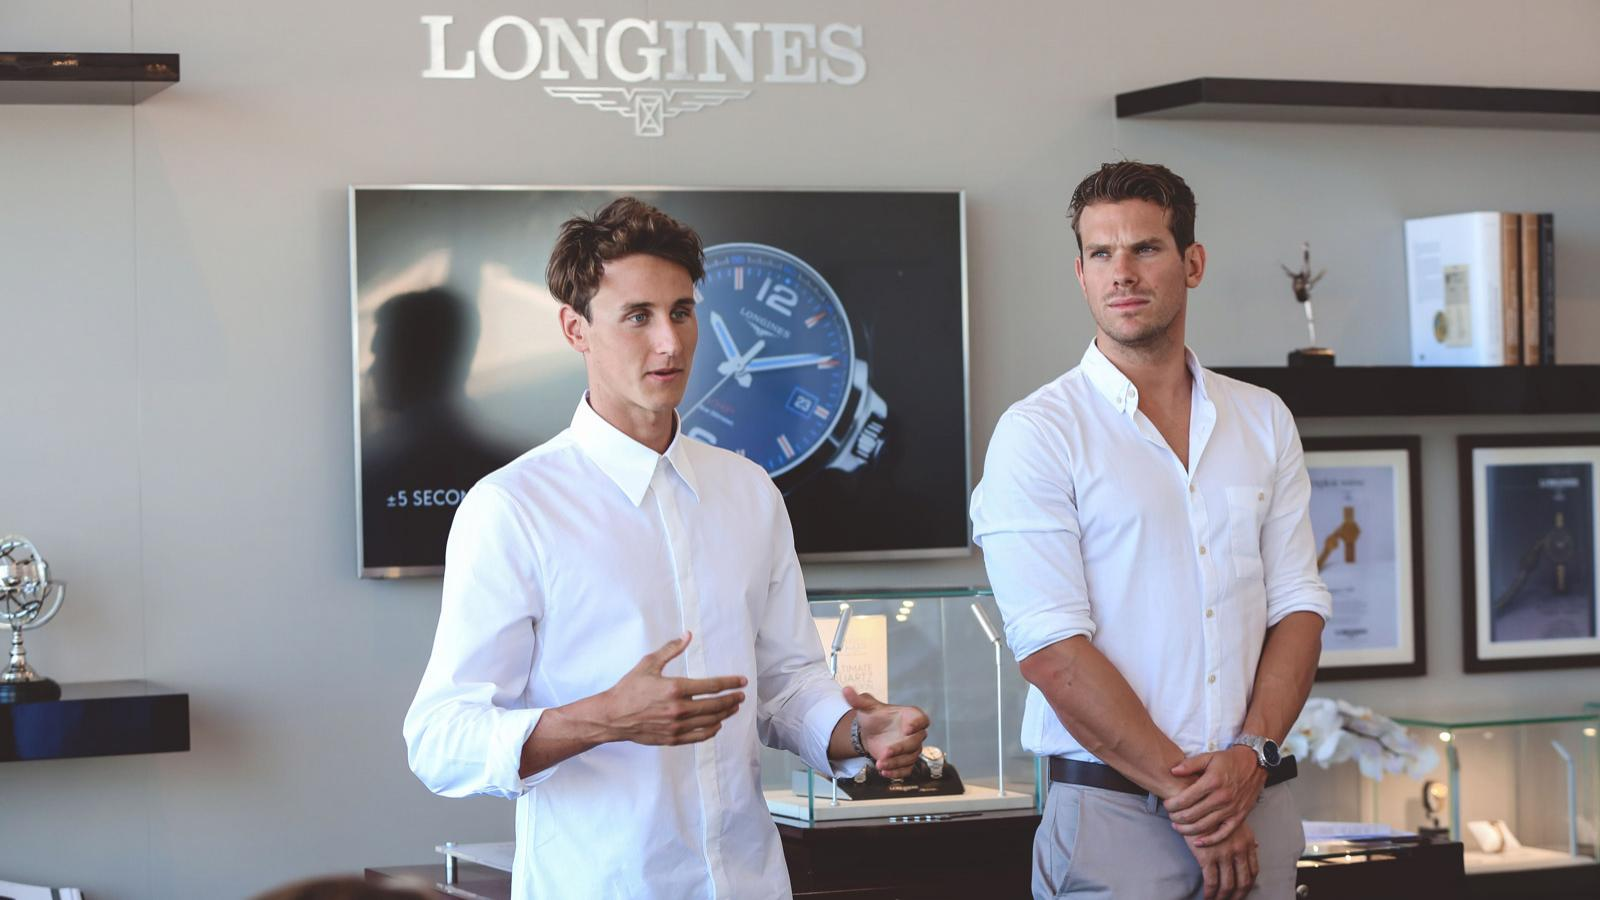 Longines Records Club,Longines Celebrates Men in Sport,Commonwealth Games 2018, Gold Coast